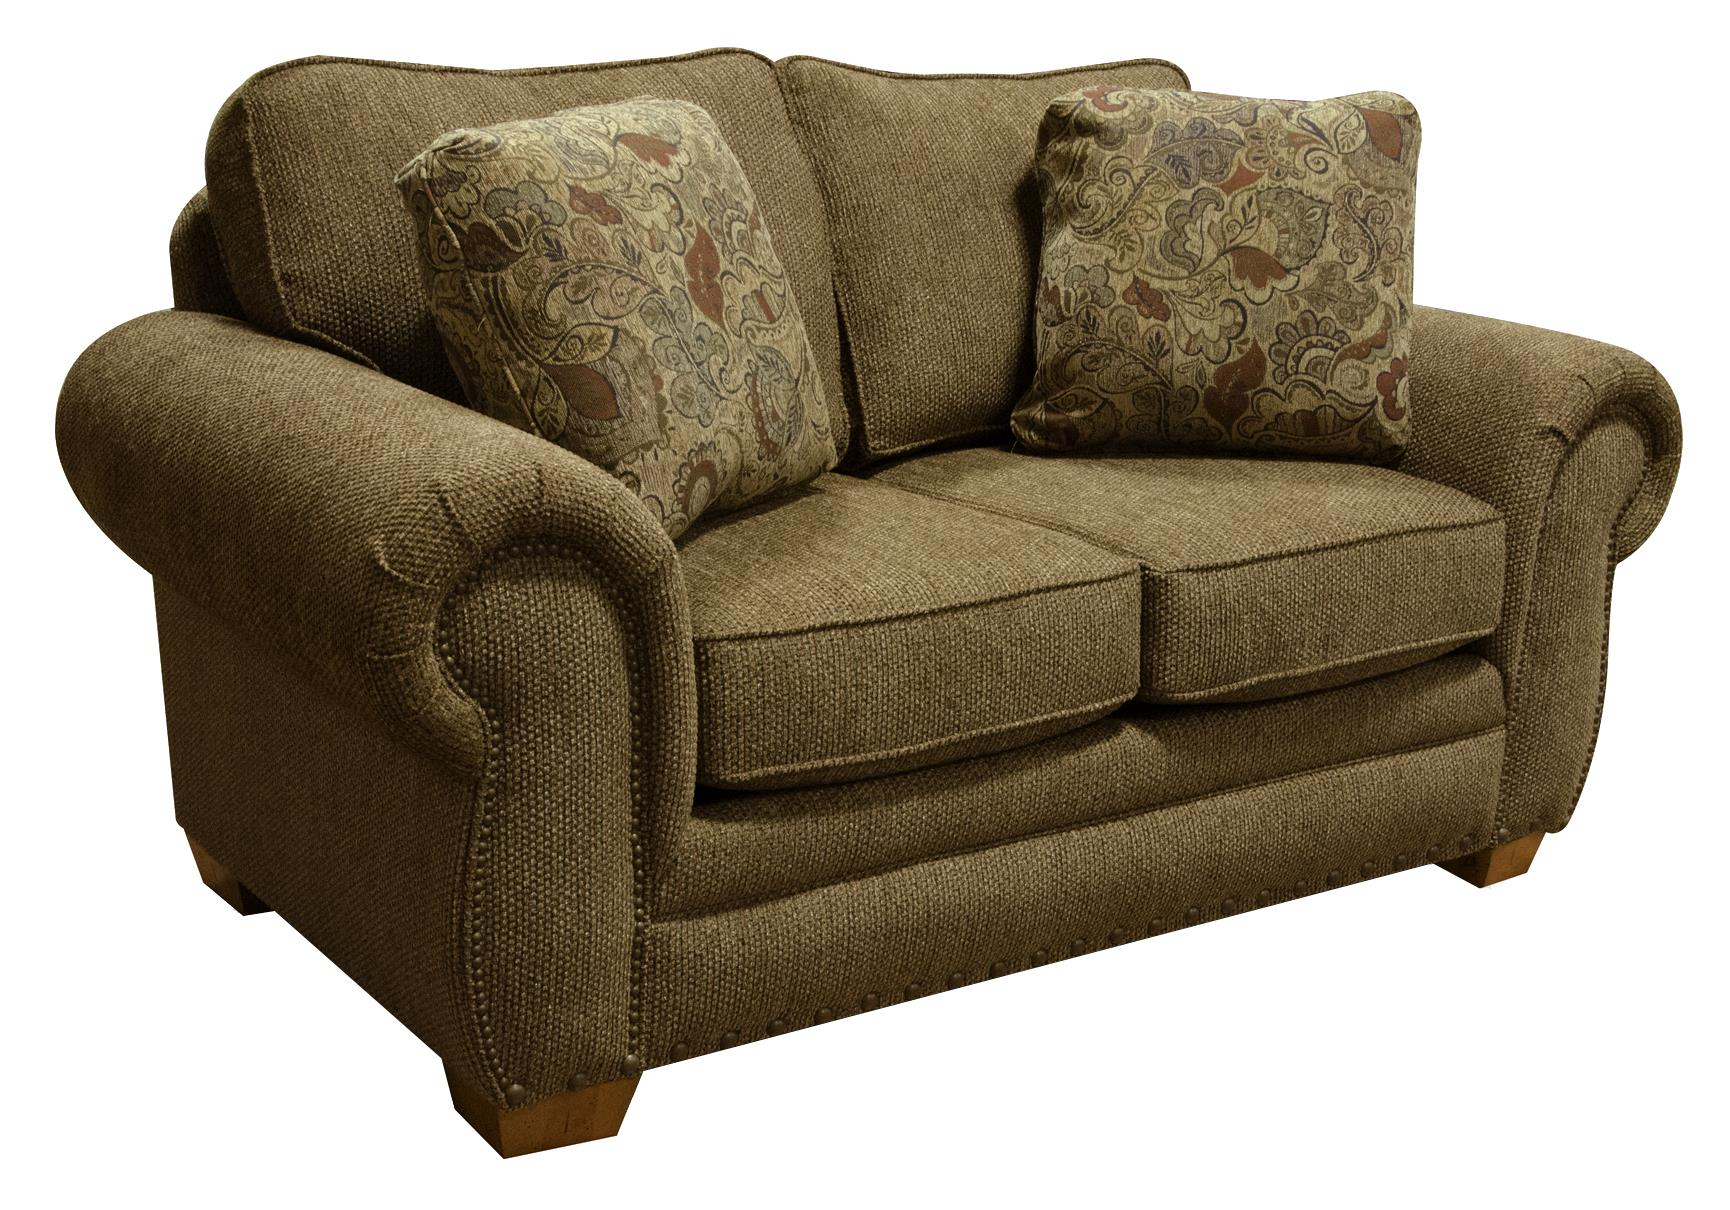 England Walters Loveseat With Nailhead Trim Furniture